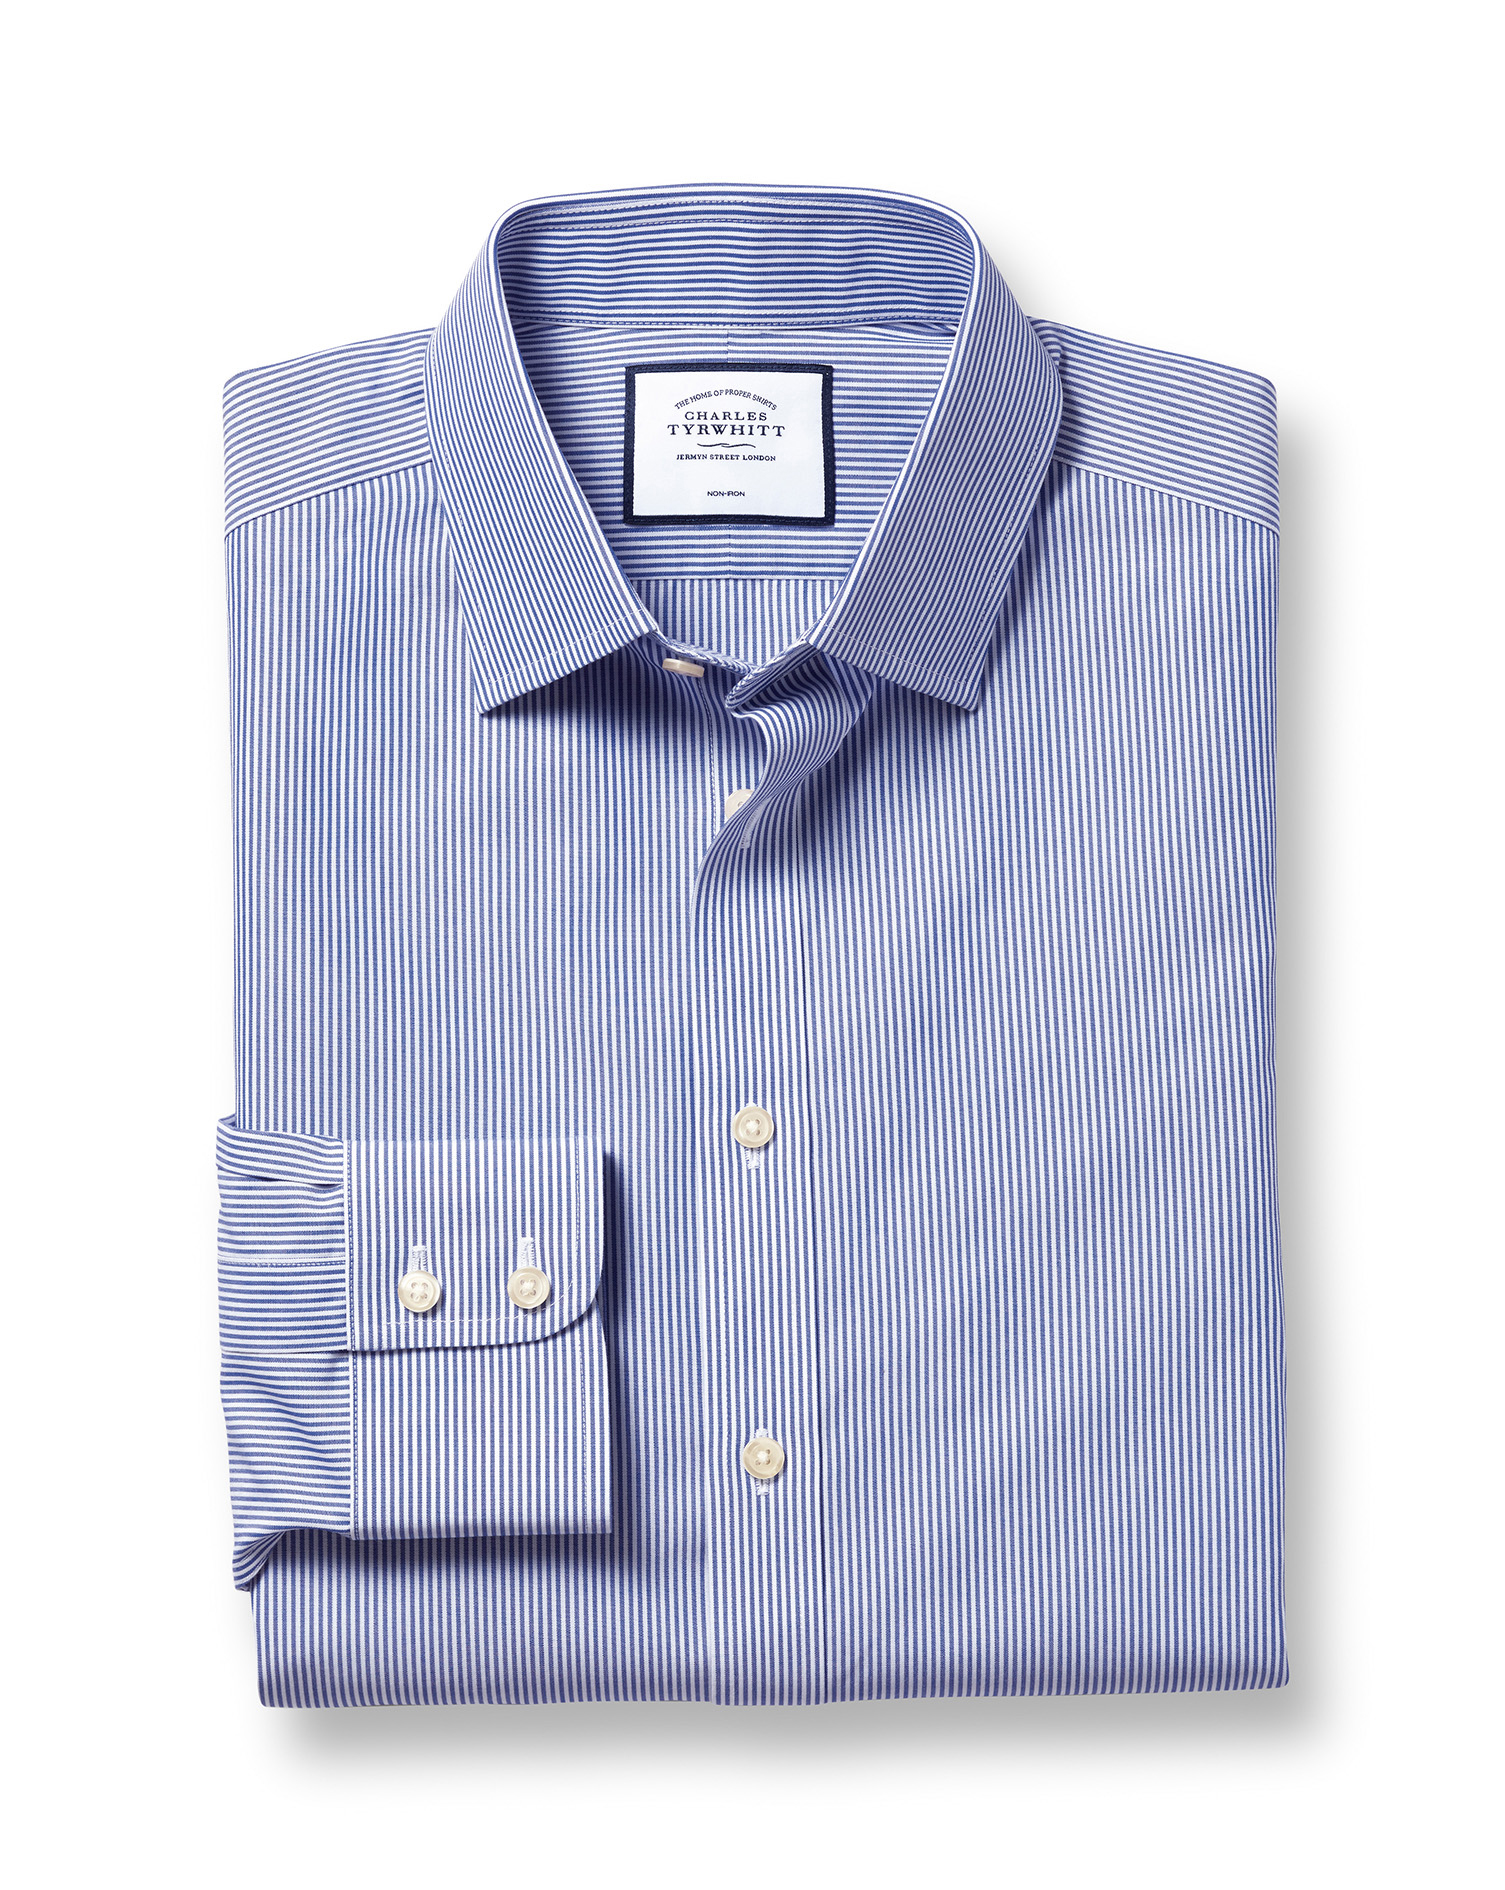 Slim Fit Non-Iron Bengal Stripe Navy Blue Cotton Formal Shirt Single Cuff Size 18/37 by Charles Tyrw